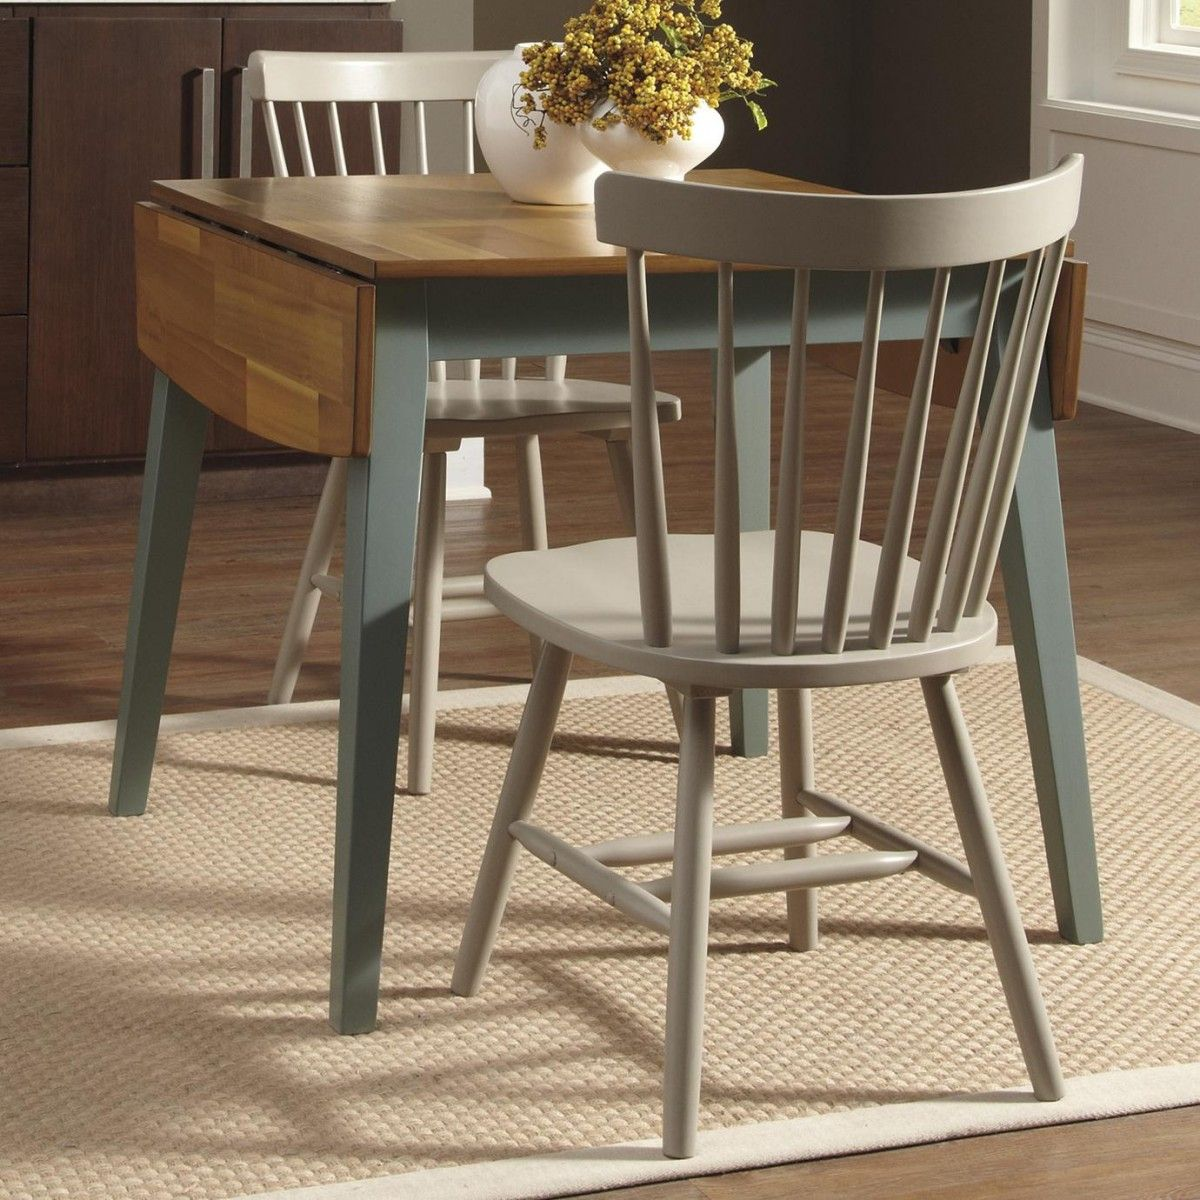 Small Kitchen Table Ideas In 2020 Square Kitchen Tables Small